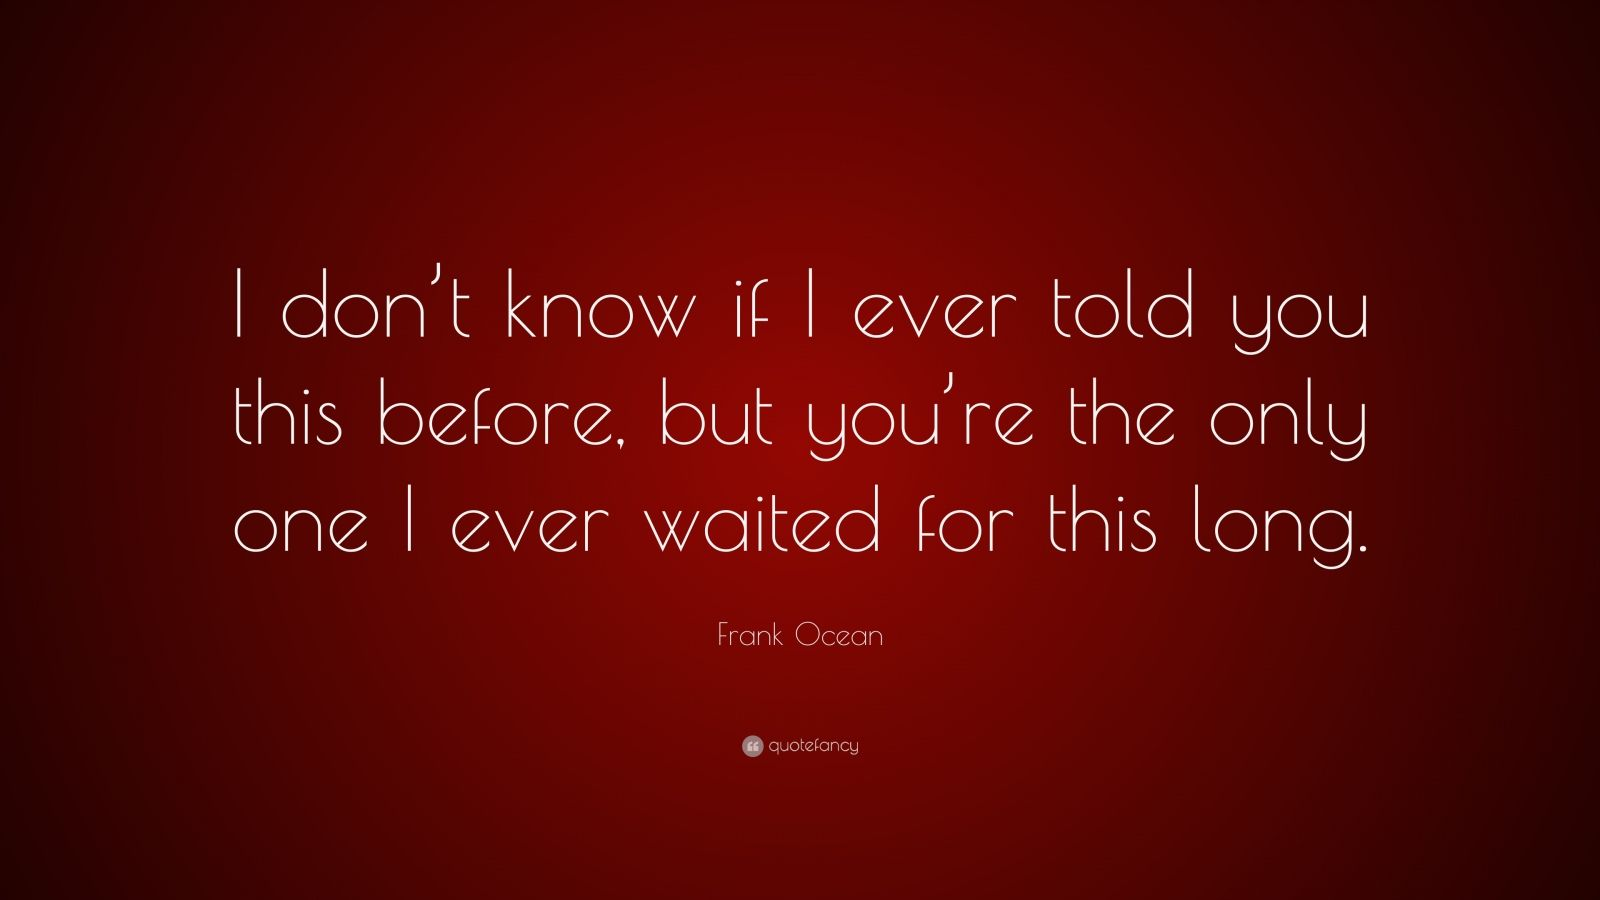 "Frank Ocean Quote: ""I don't know if I ever told you this before, but you're the only one I ever waited for this long."""